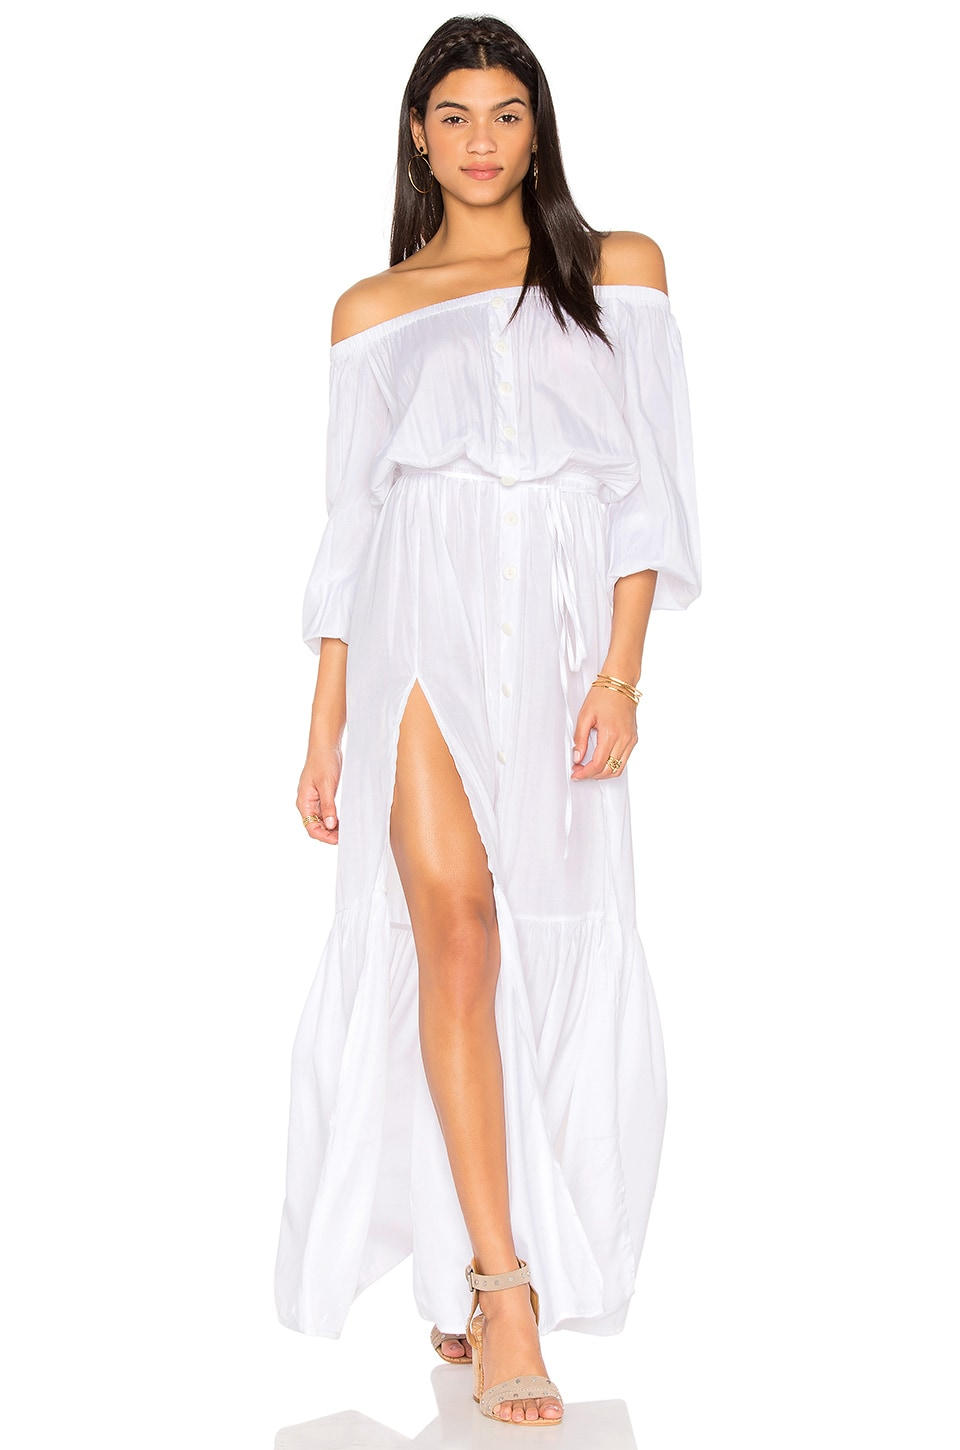 LIONESS Summer Punch Maxi Dress in White